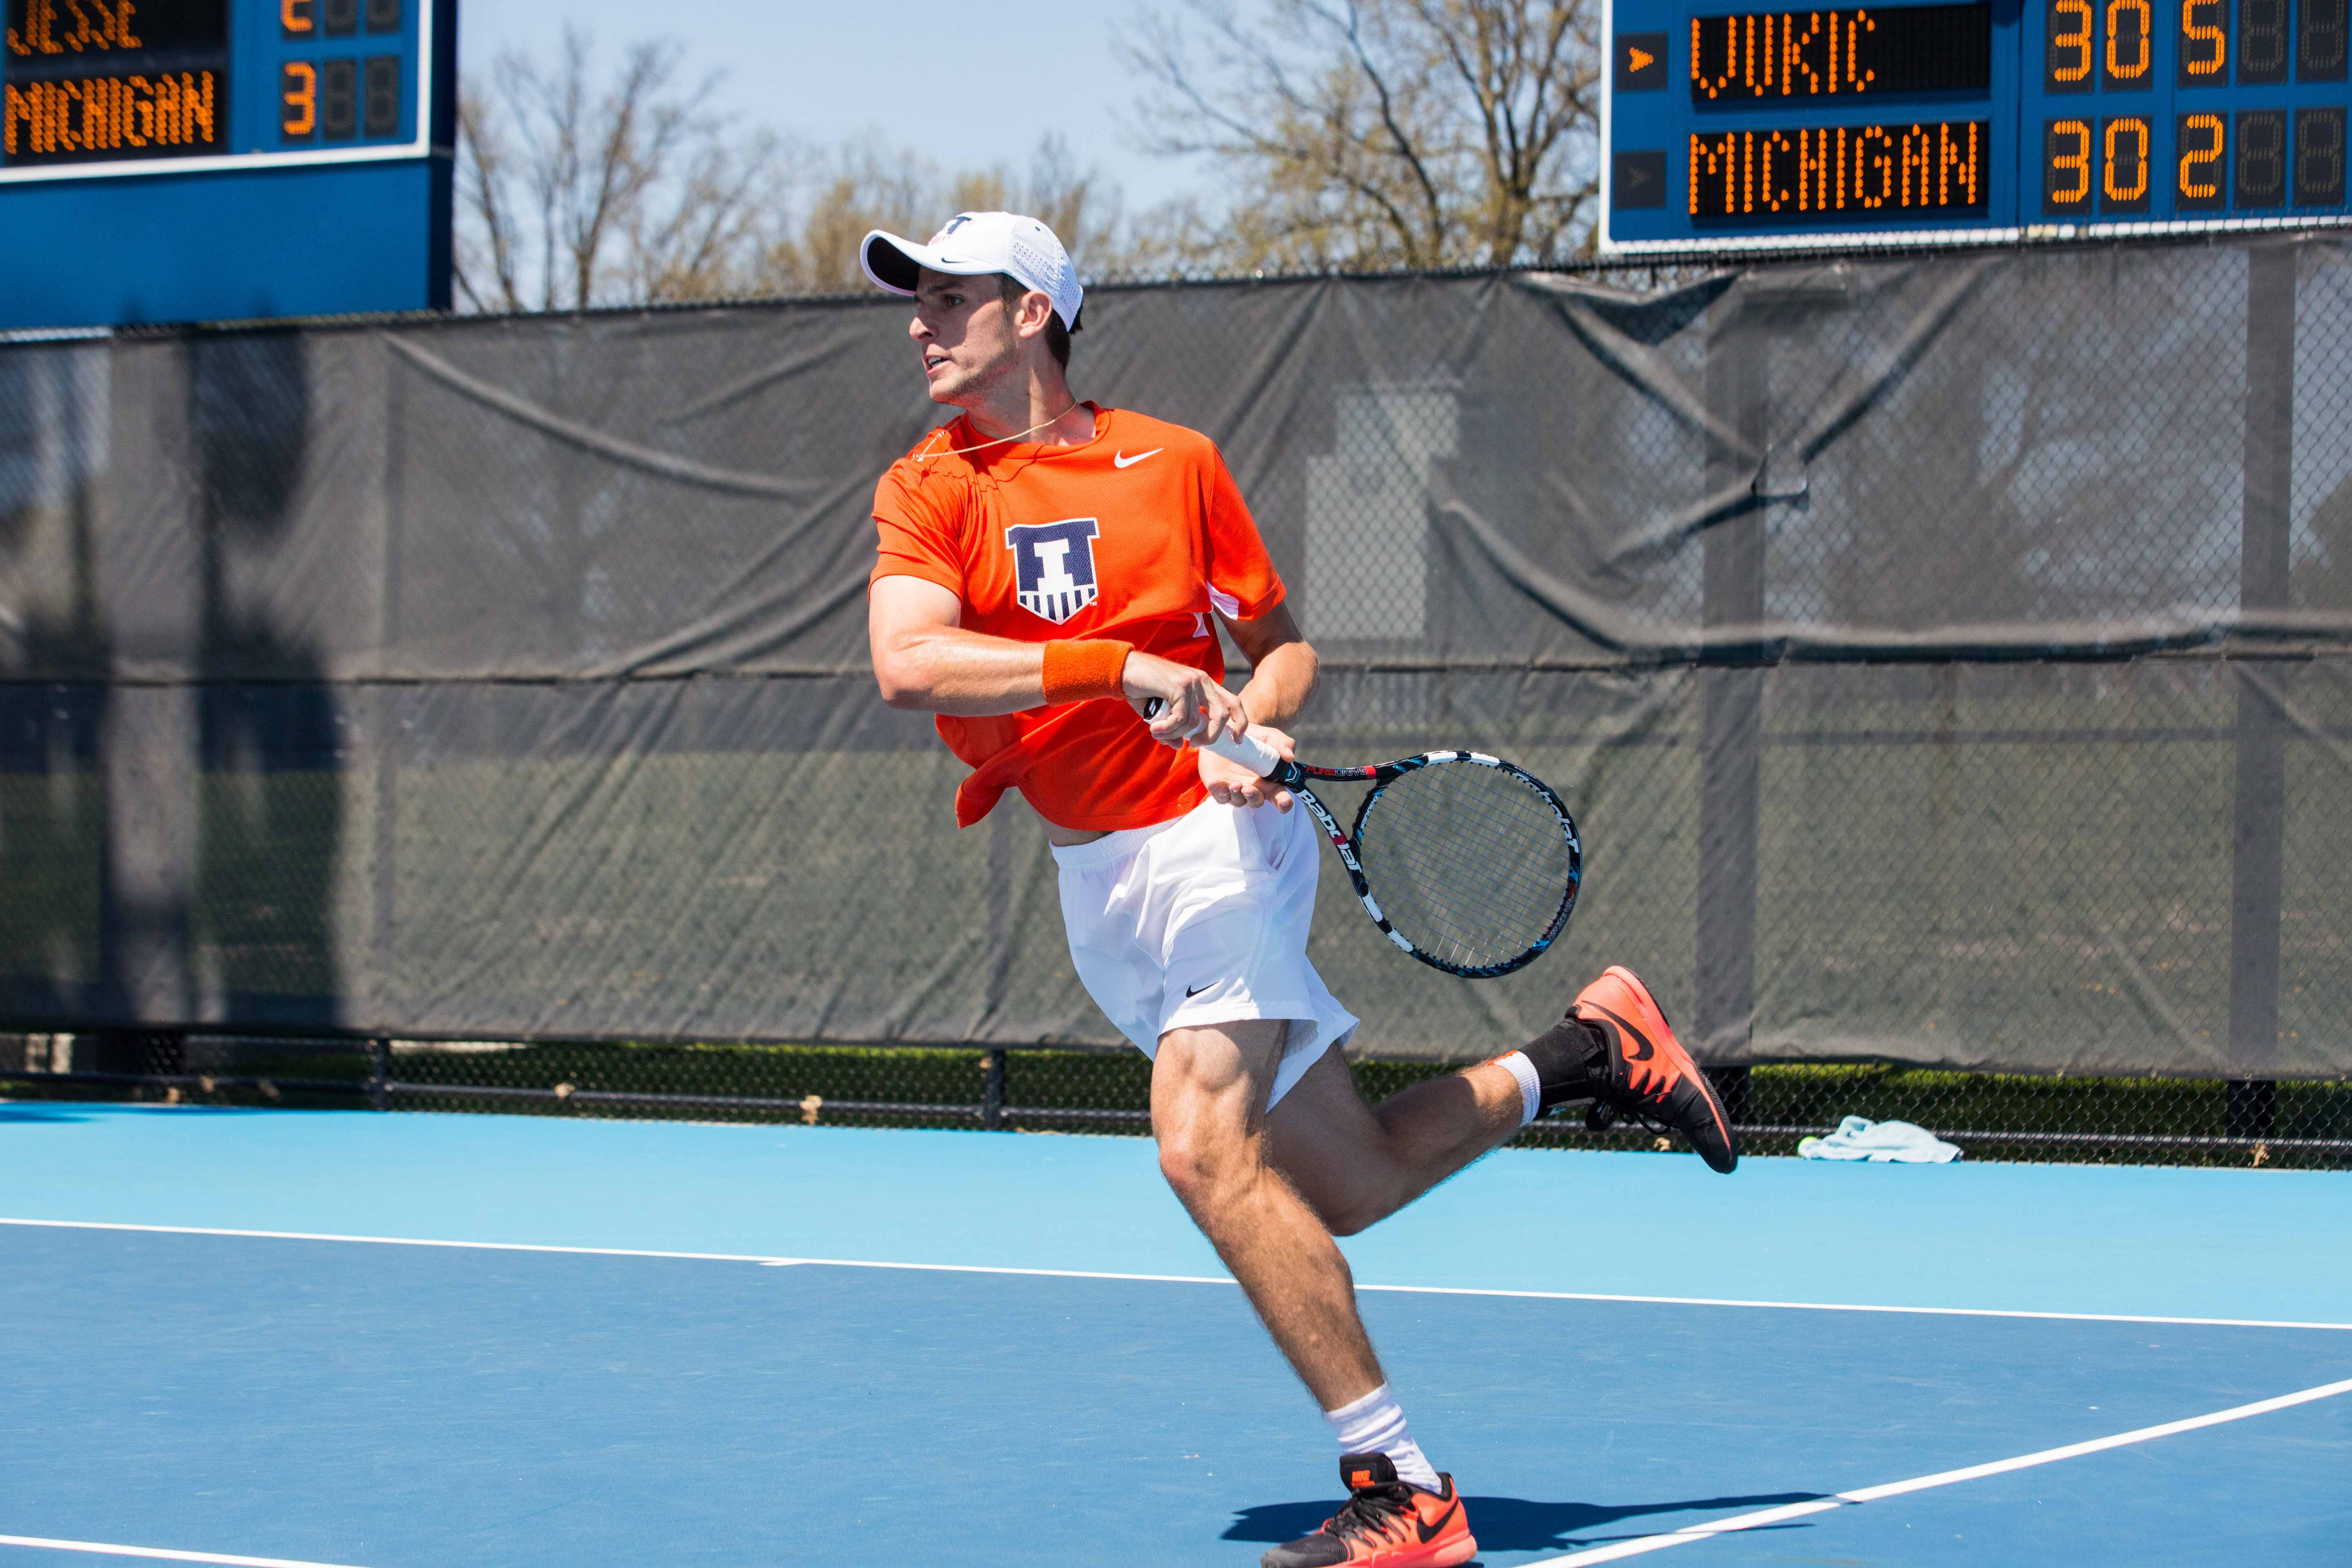 Illinois' Aleks Vukic returns the ball during the meet against No. 21 Michigan at the Atkins Tennis Center on April 17, 2016.